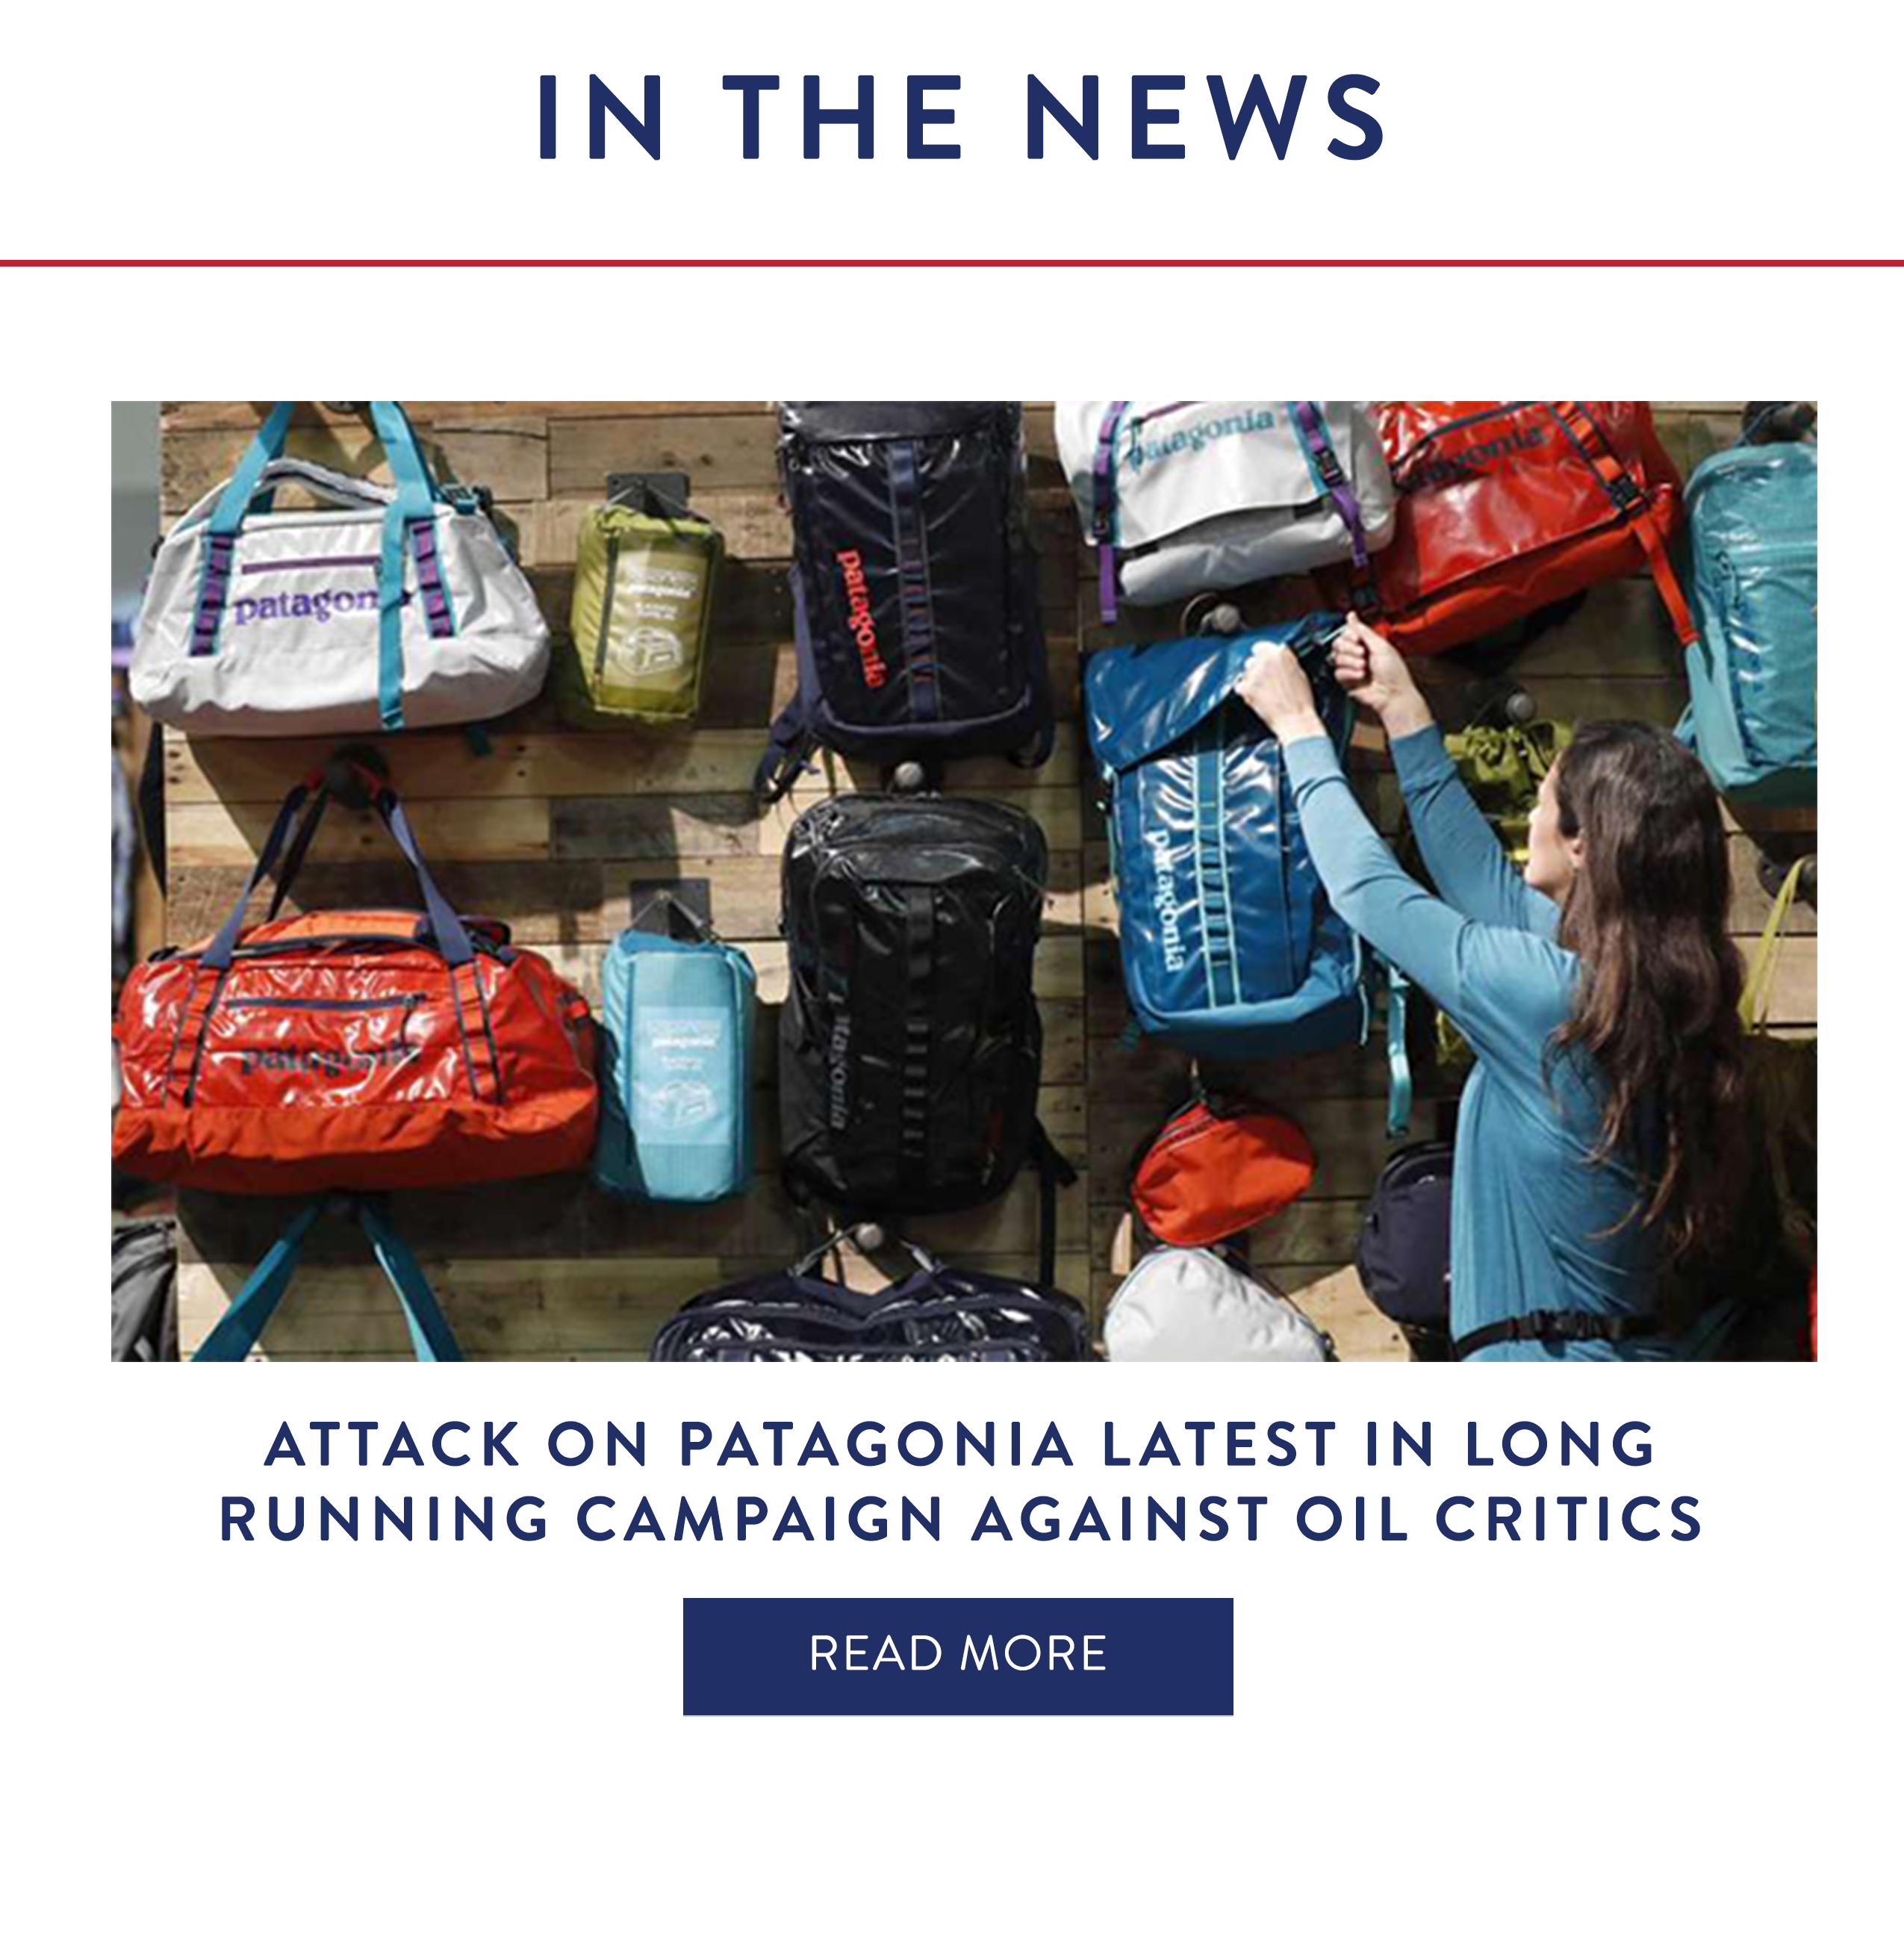 Attack on Patagonia latest in long running campaign against oil critics